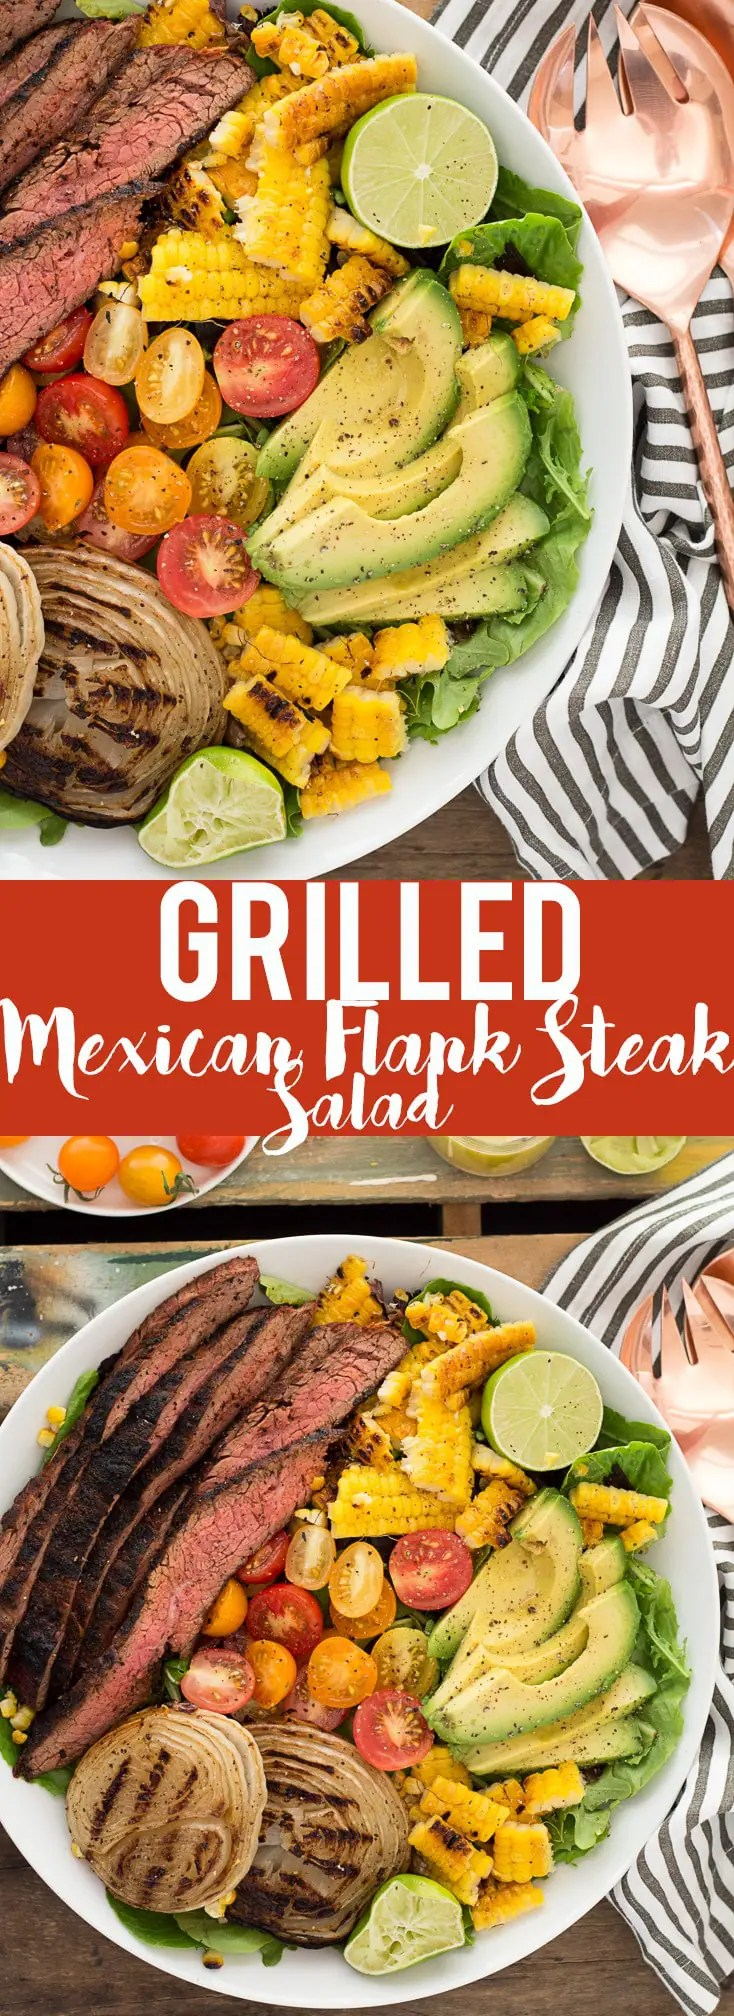 This Mexican Grilled Flank Steak Salad with Honey Lime Dressing has a smoky spiced grilled flank steak, charred corn, grilled onions, creamy avocado and a zingy honey lime dressing. Quick to make inside on the stove or outside on the grill!